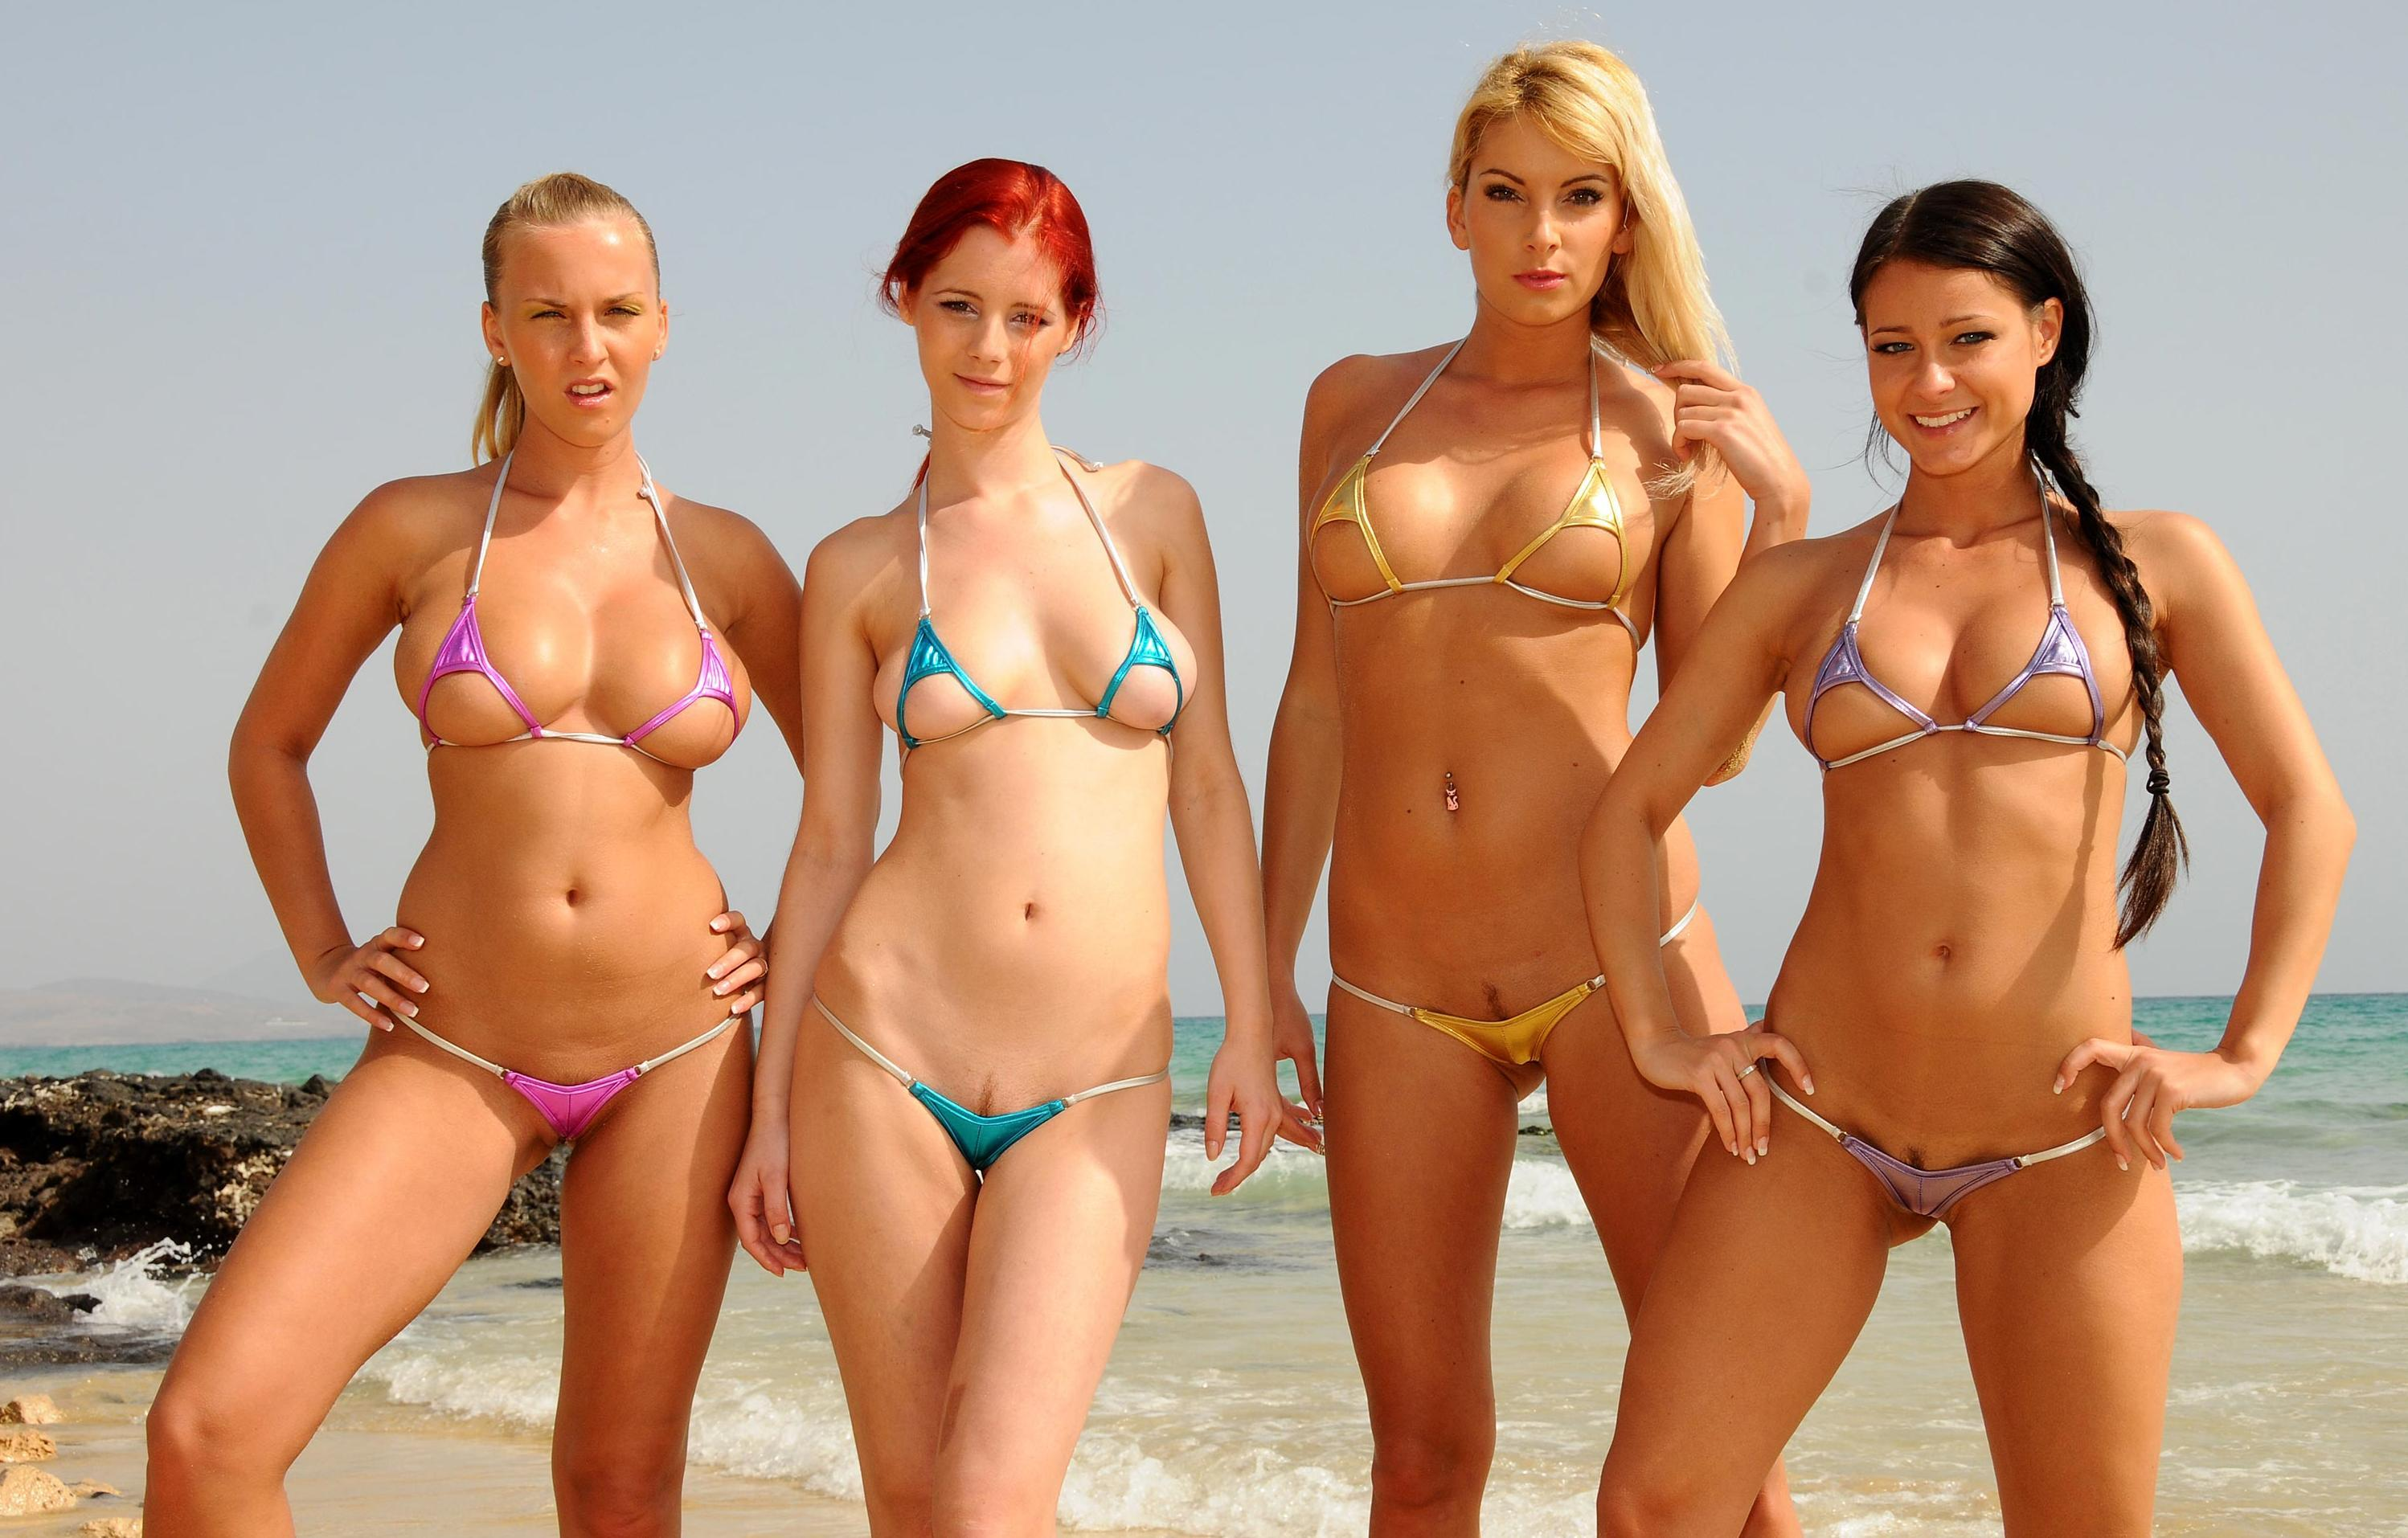 These girls probably have smallest bikinis on the world and they look fantastic